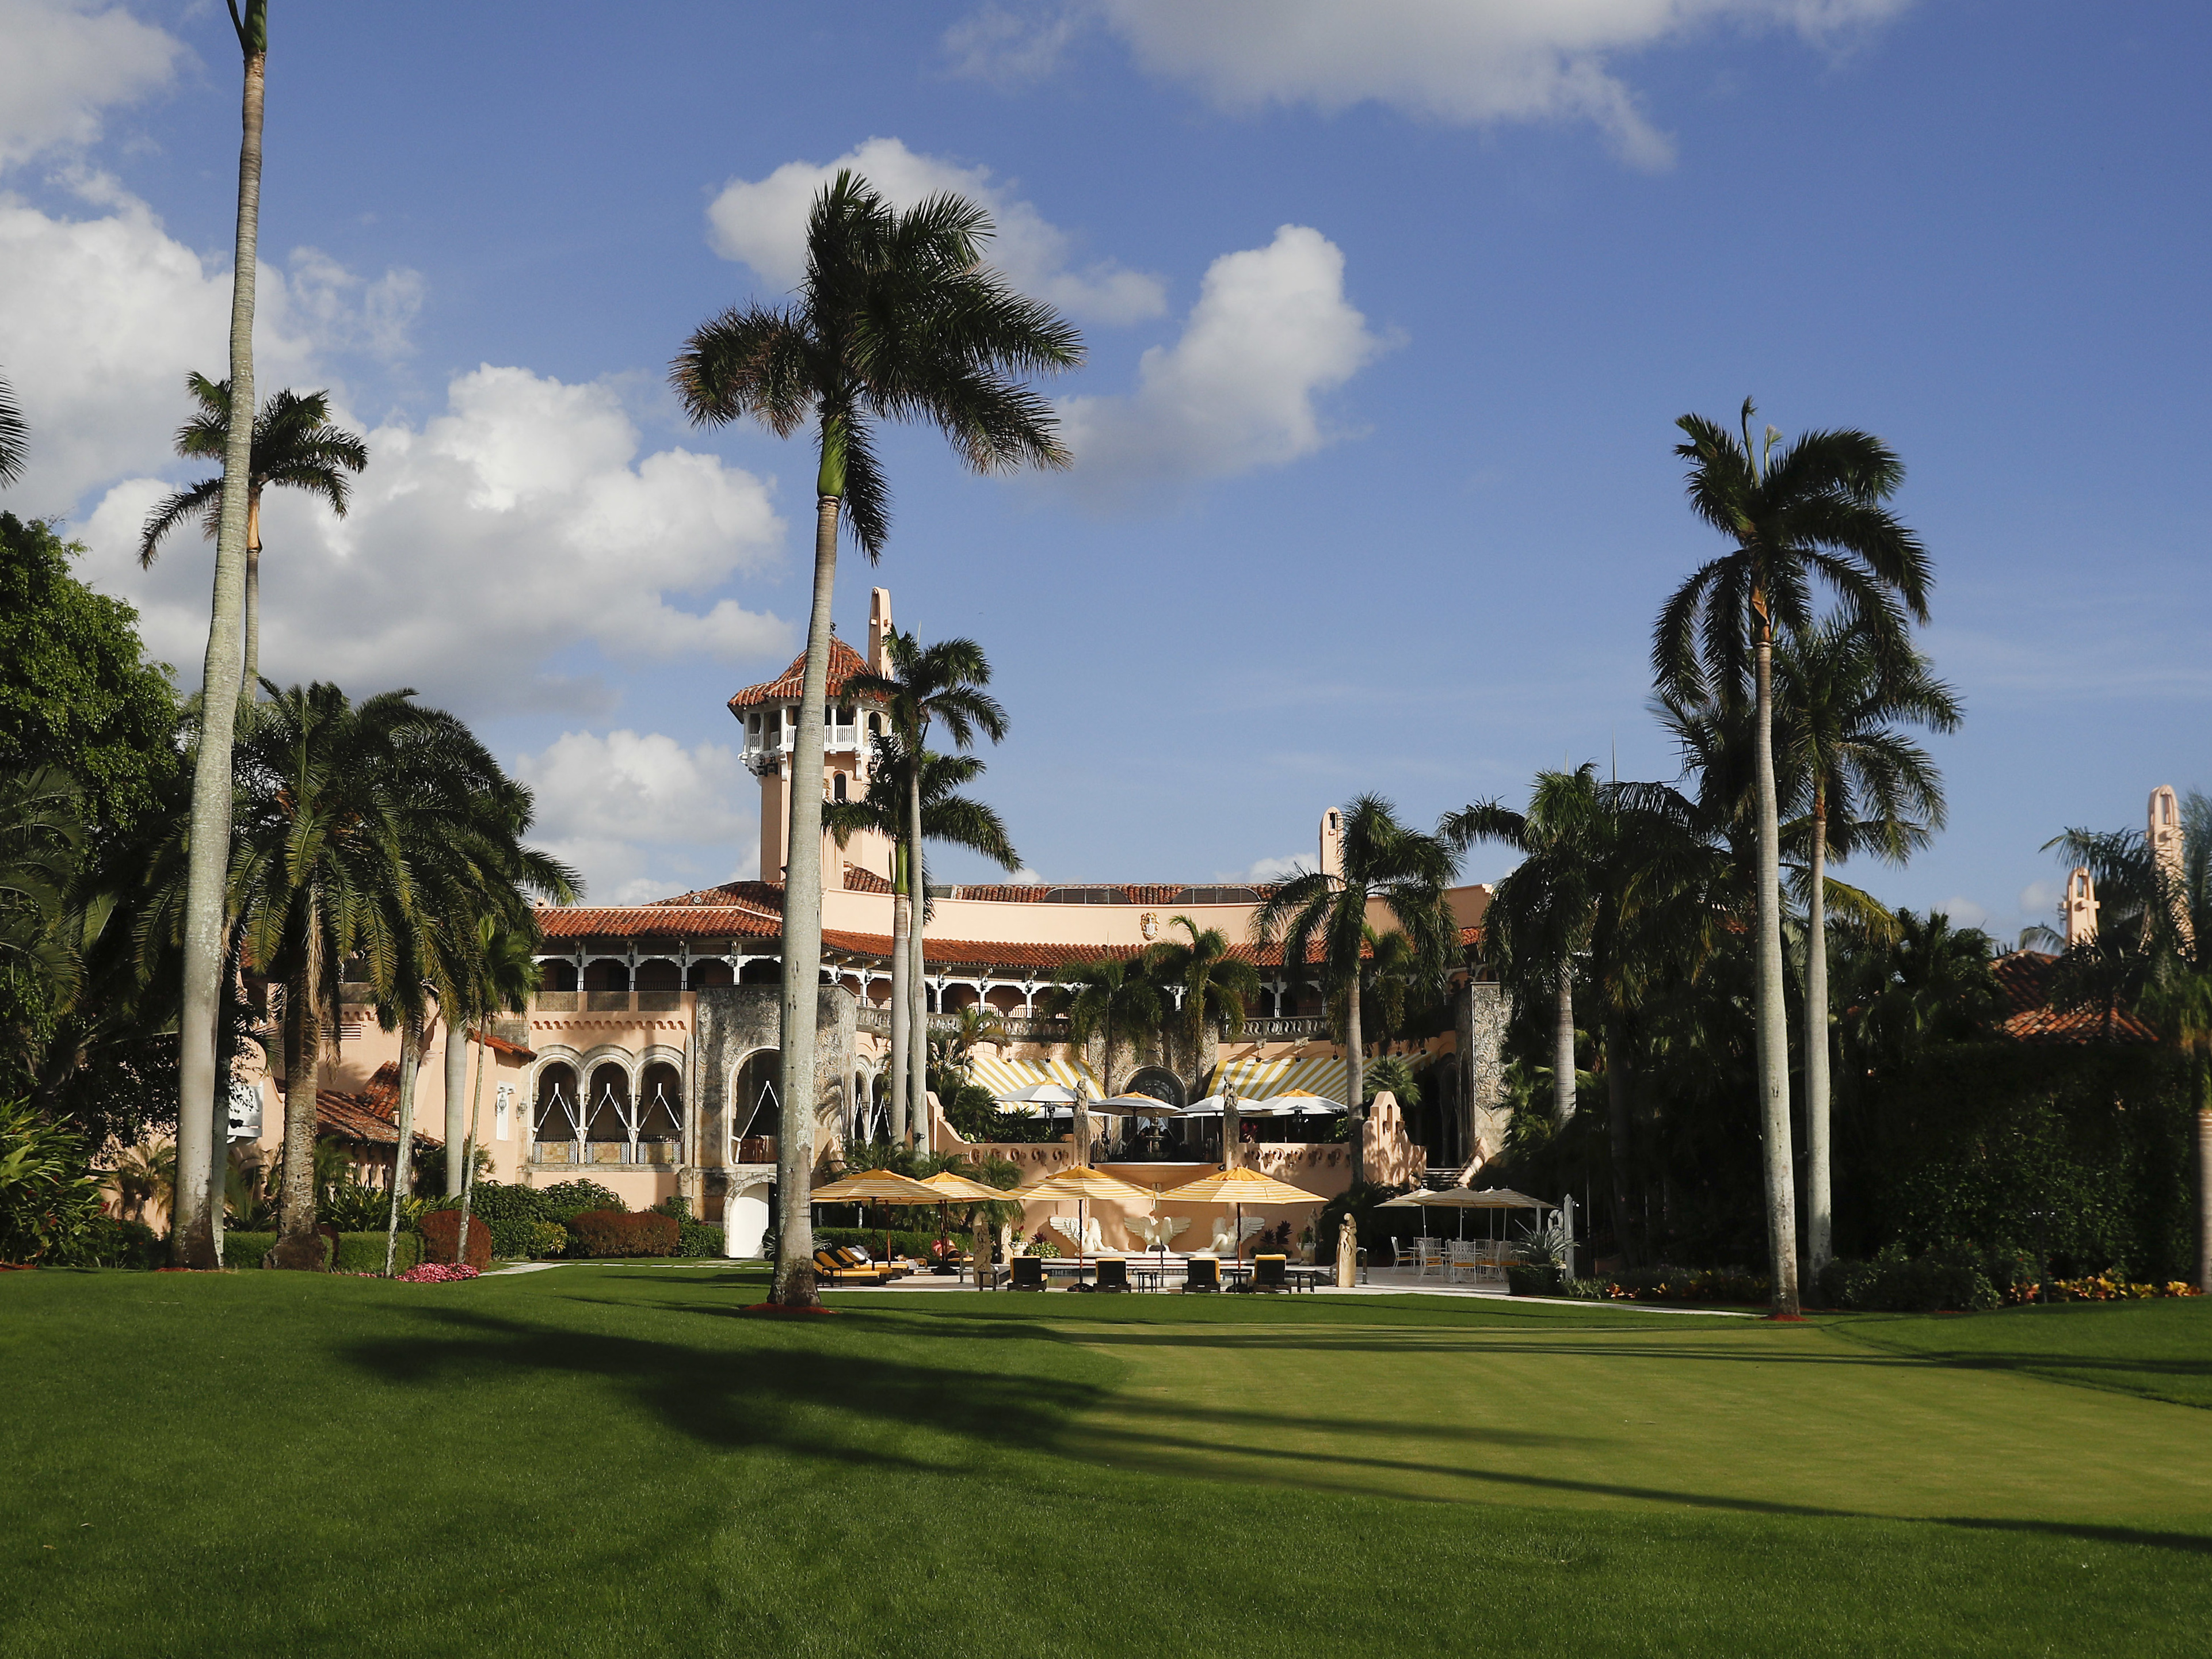 Trump's Campaign Paid Millions To His Own Properties, FEC Documents Say